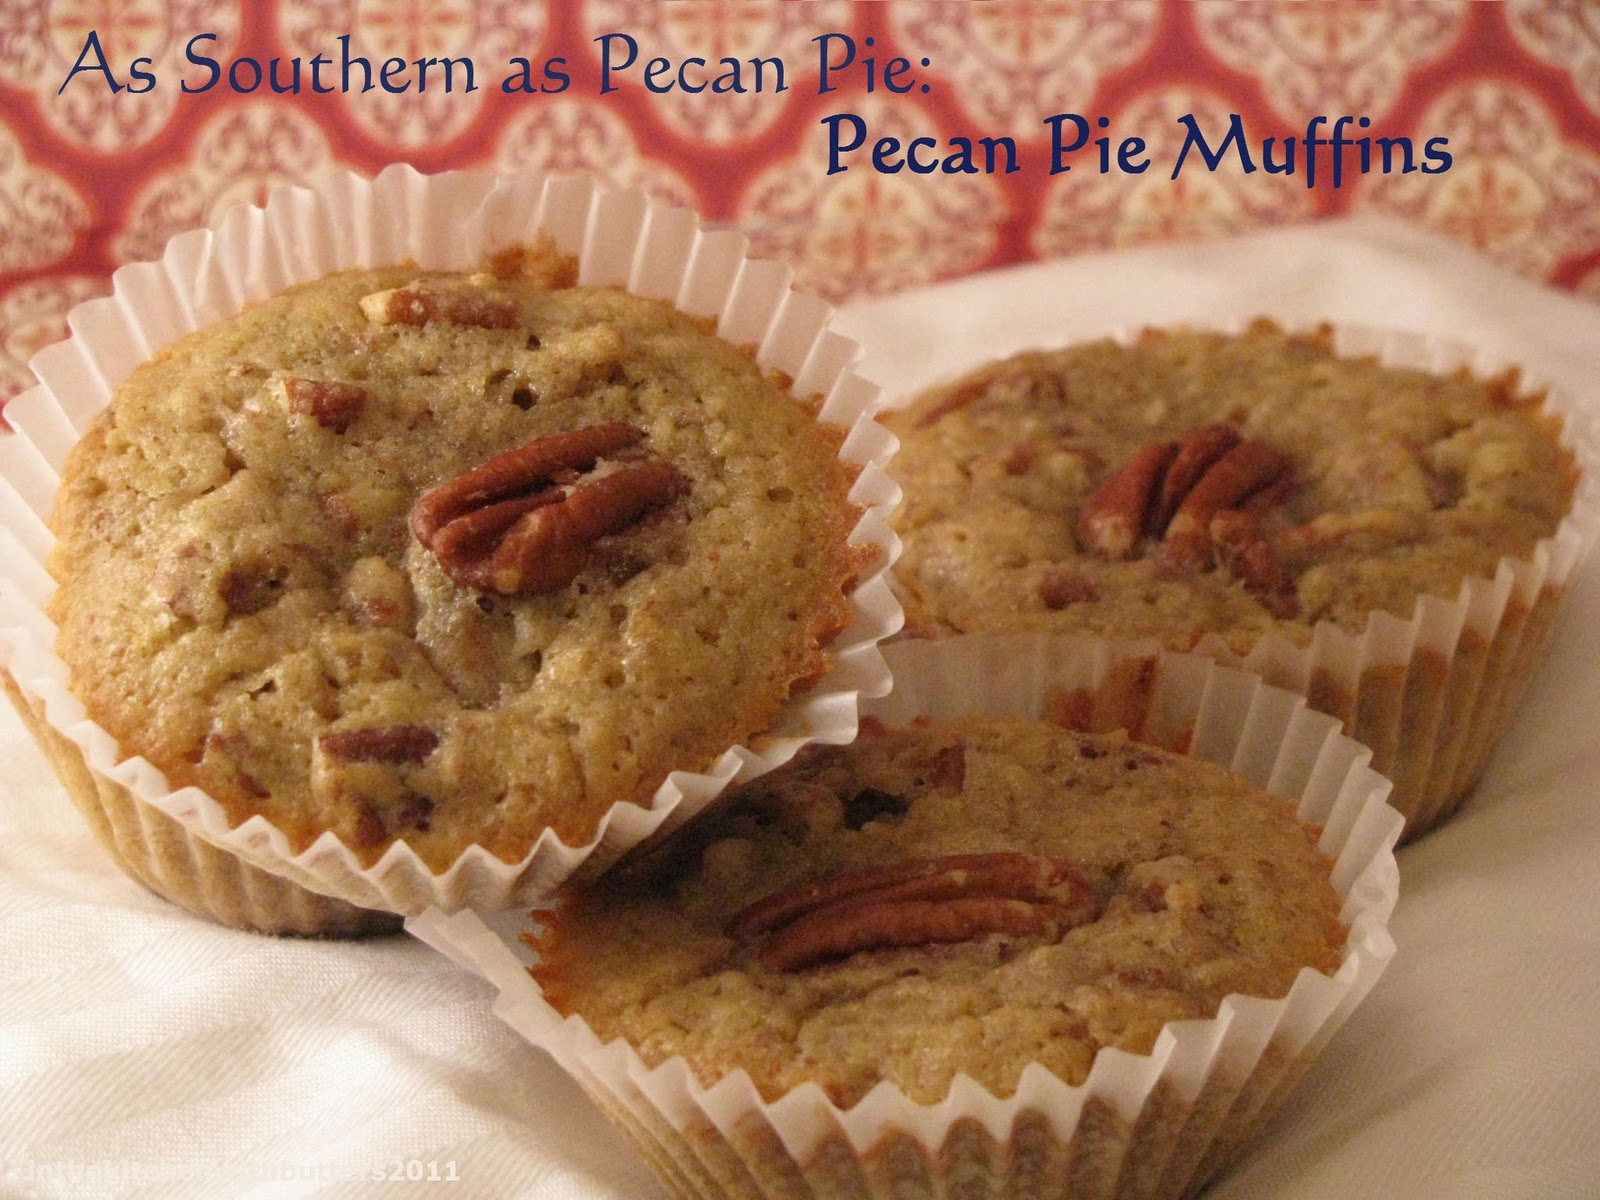 In The Kitchen with Butters: Pecan Pie Muffins